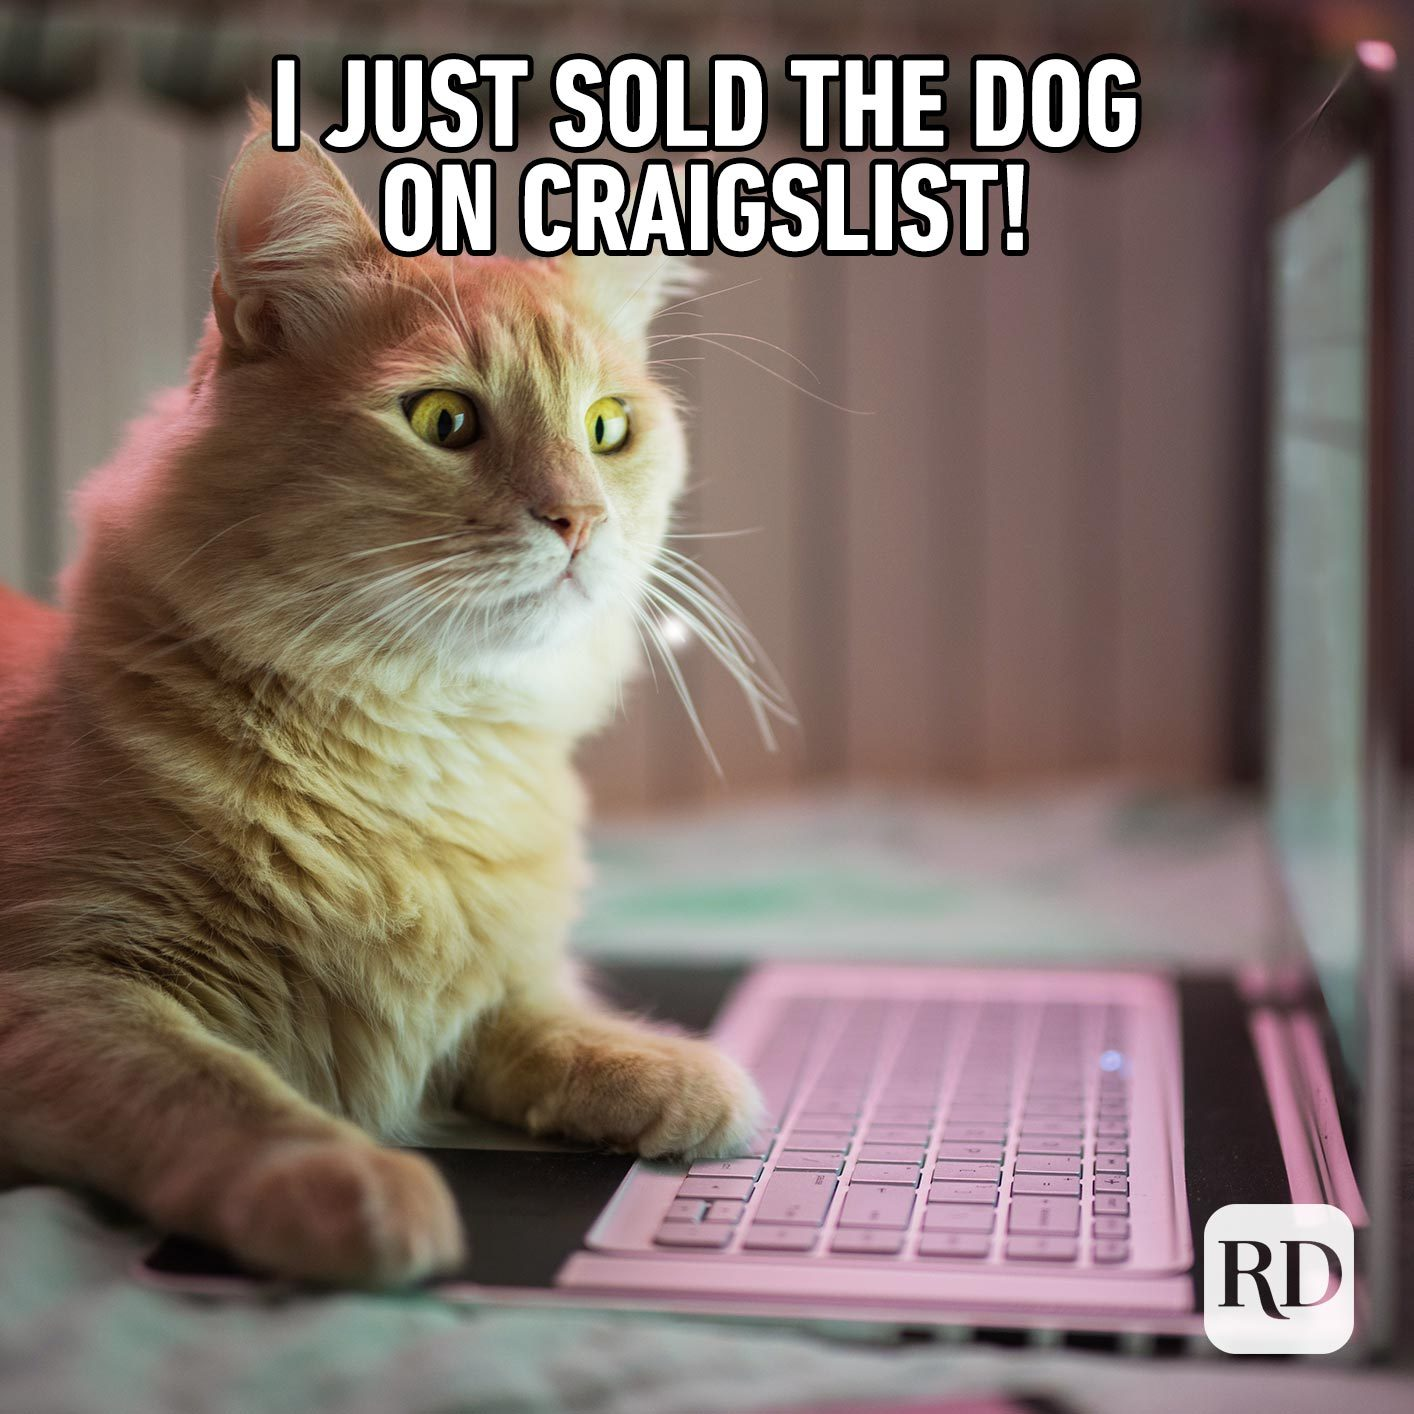 In the market for a dog?